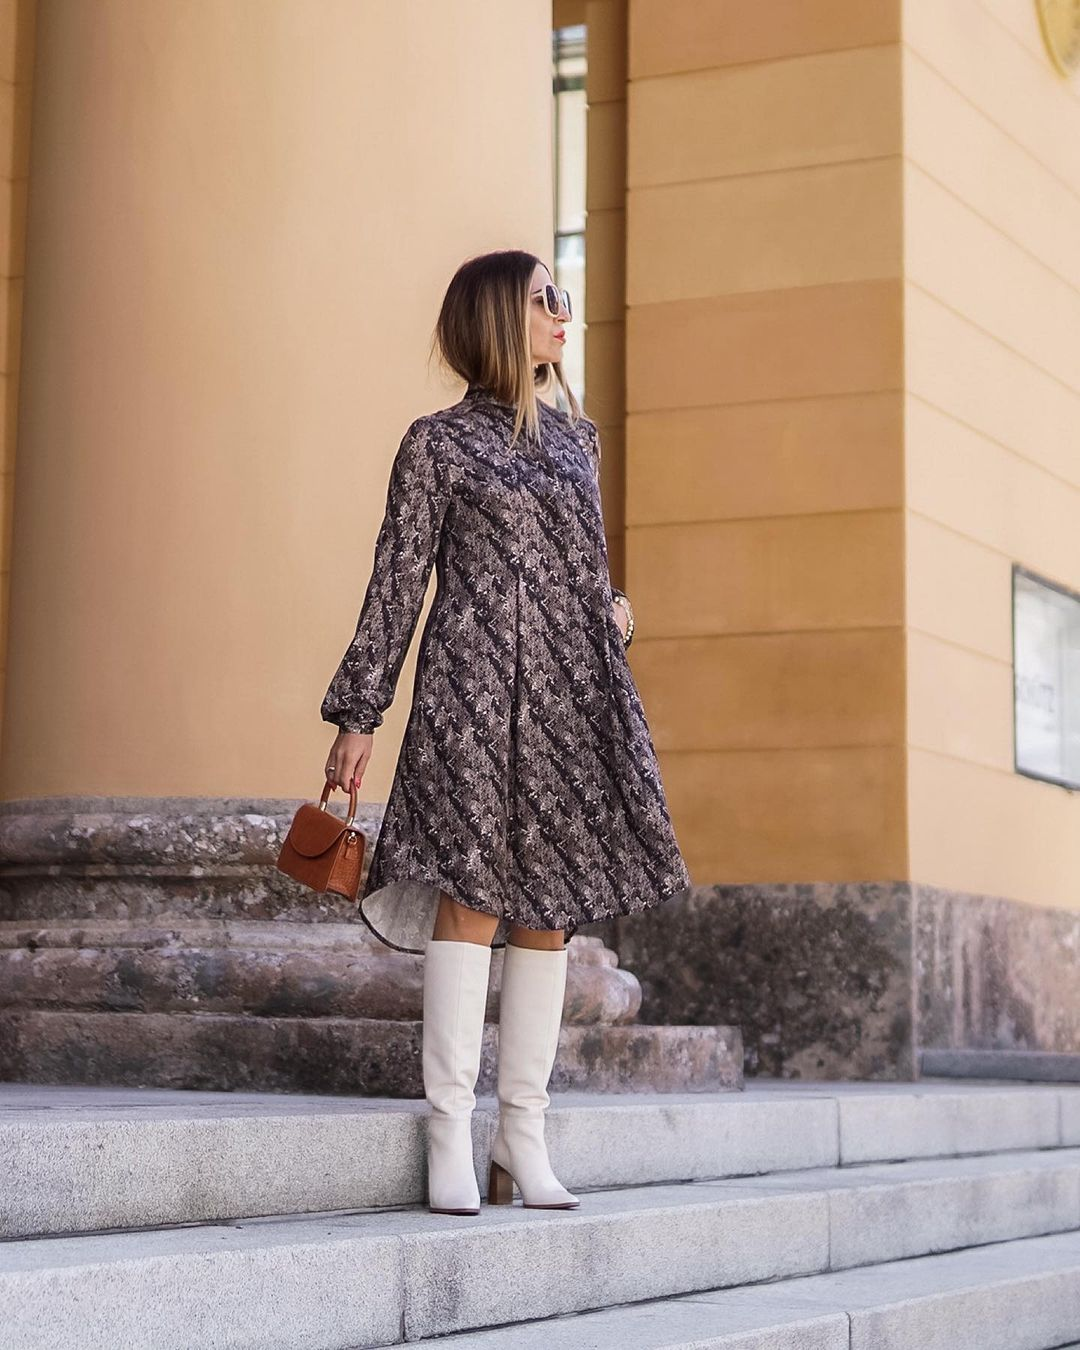 How to style a dress and white boots